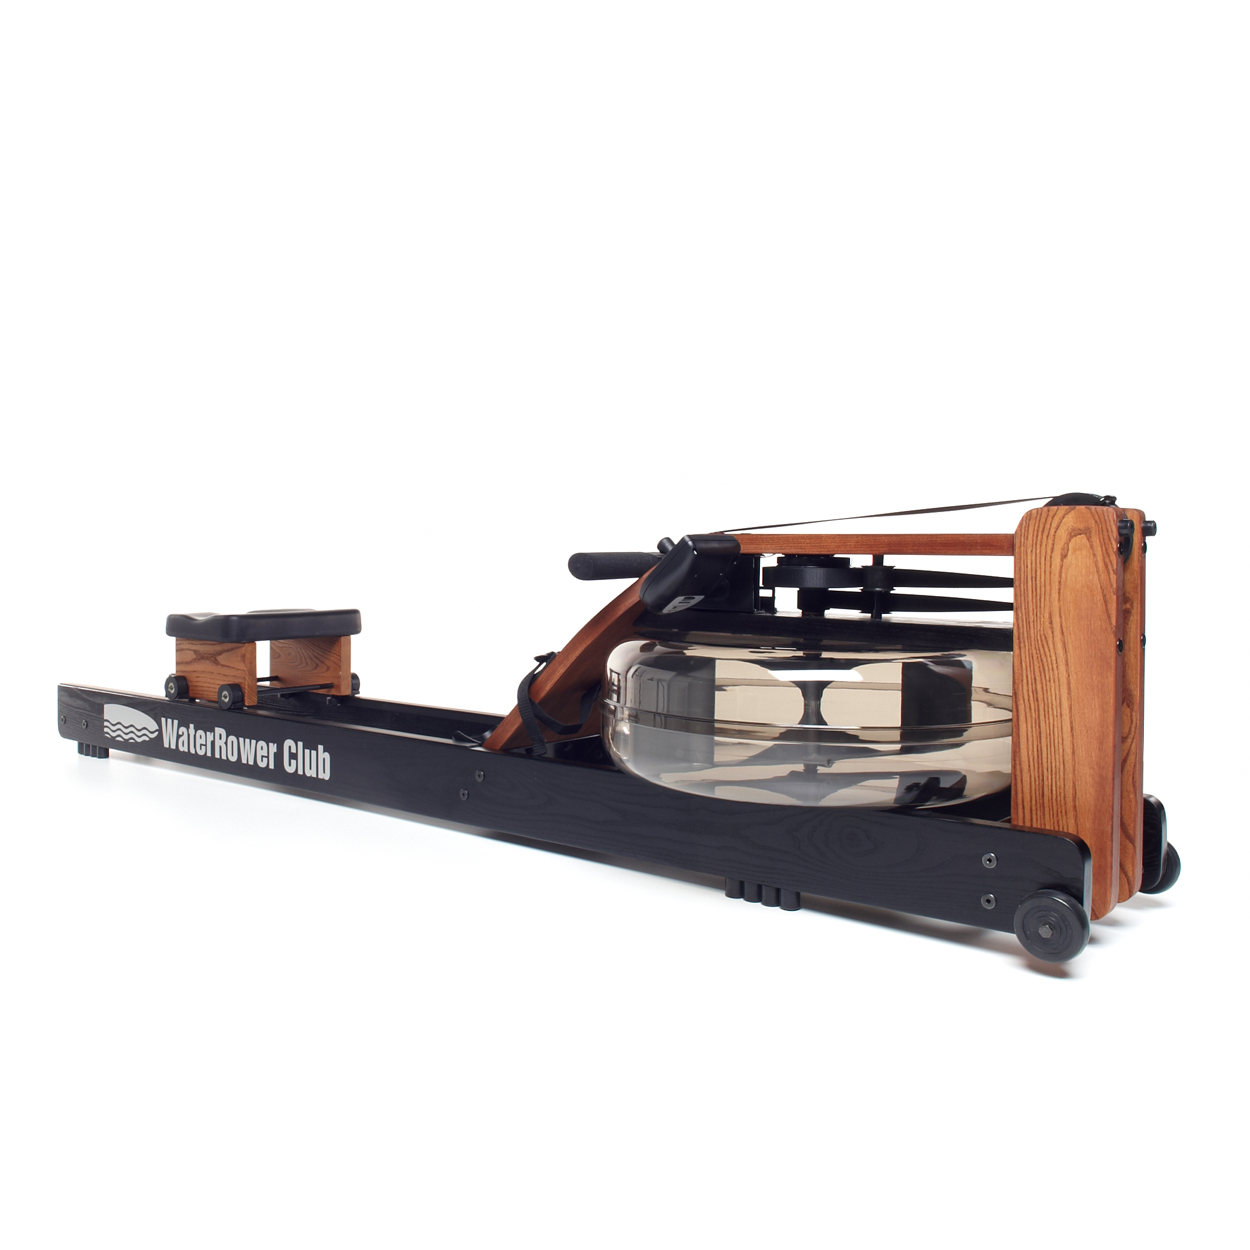 WaterRower Club Rowing Machine